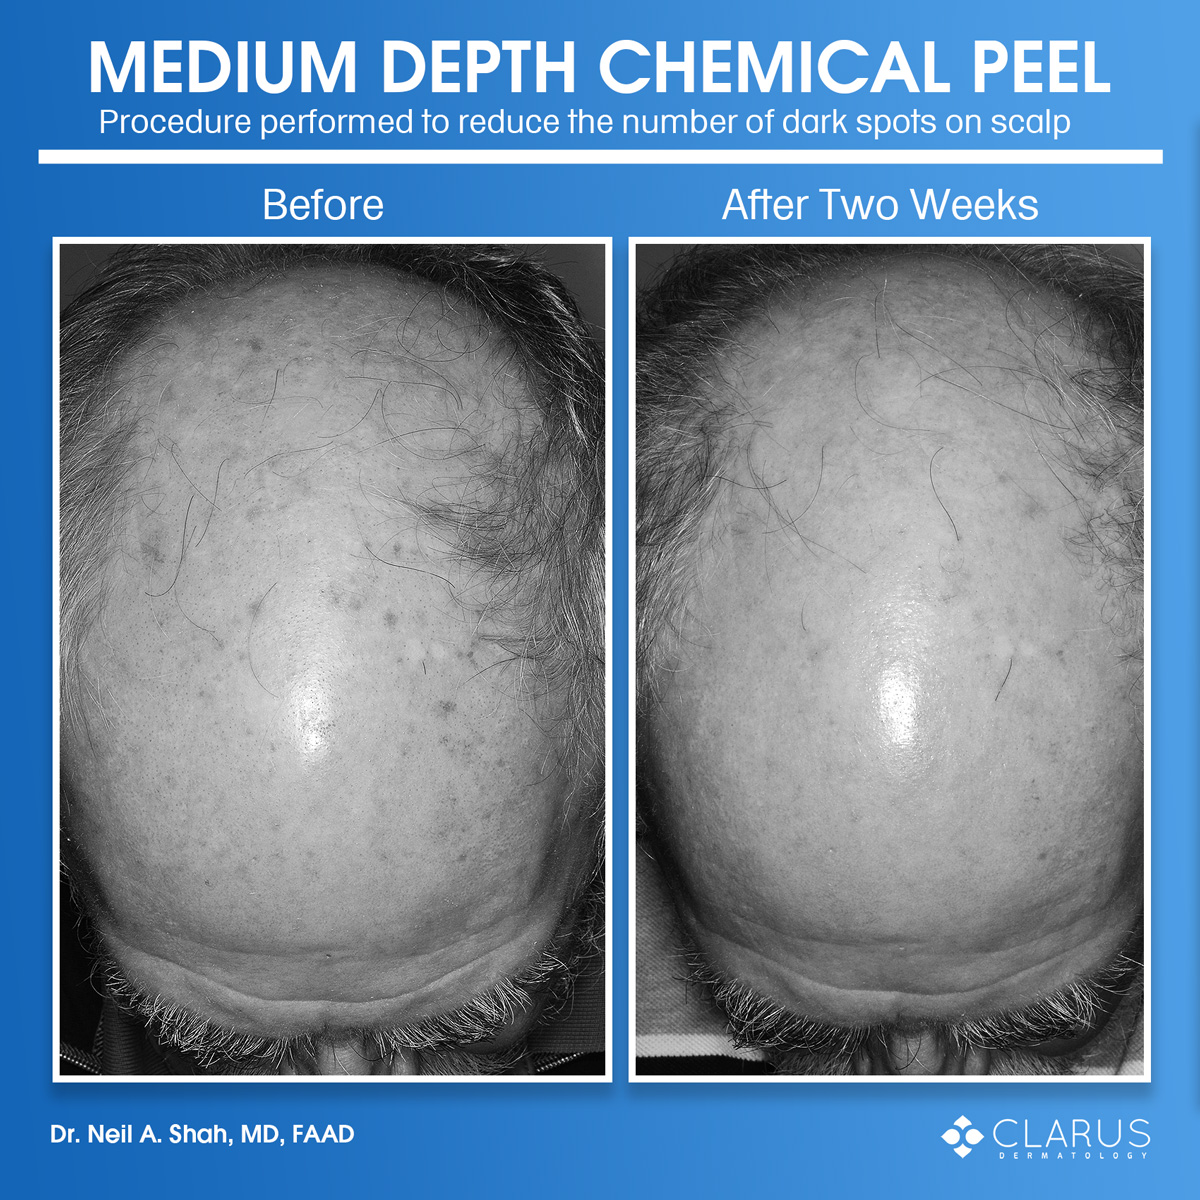 A patient visited our clinic and Dr. Shah performed a medium depth chemical peel on the patient's scalp to reduce the number of brown spots. Even though we own a lot of lasers, we often perform chemical peels at the clinic because they are safe, well-tolerated and highly cost-effective.